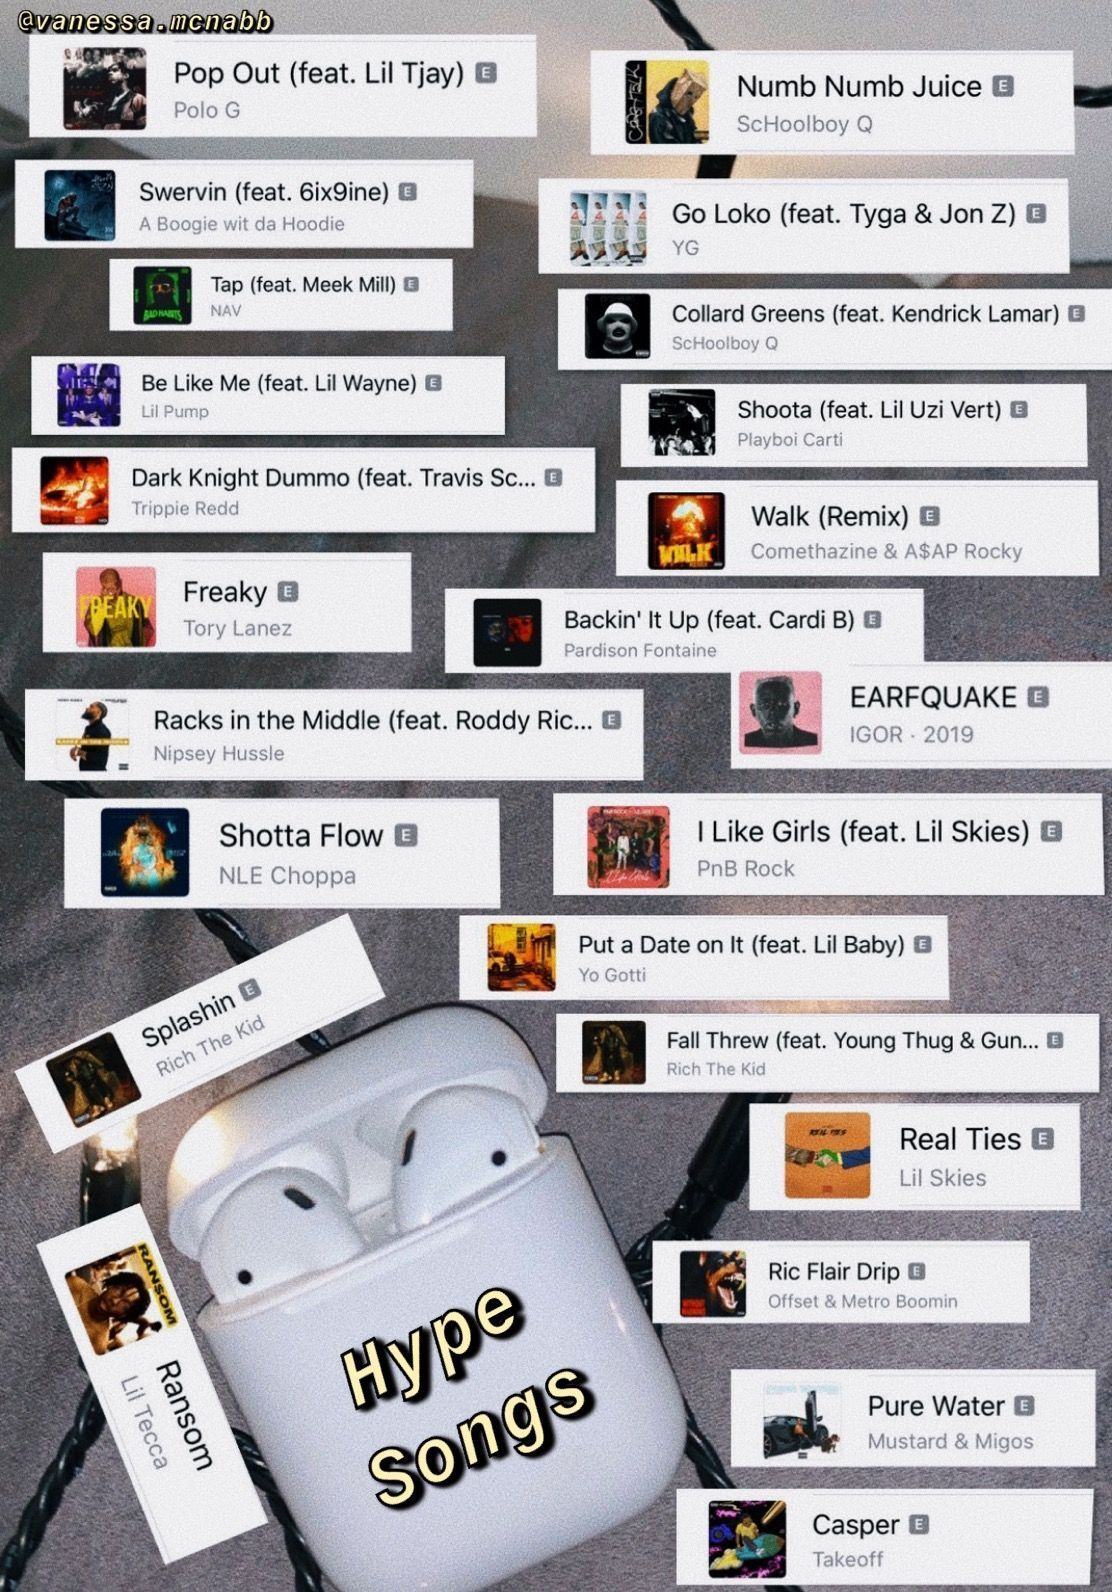 Rap music  #musicsongs Nobody asked for this but I'd appreciate it if you repost o whateva #Playlist